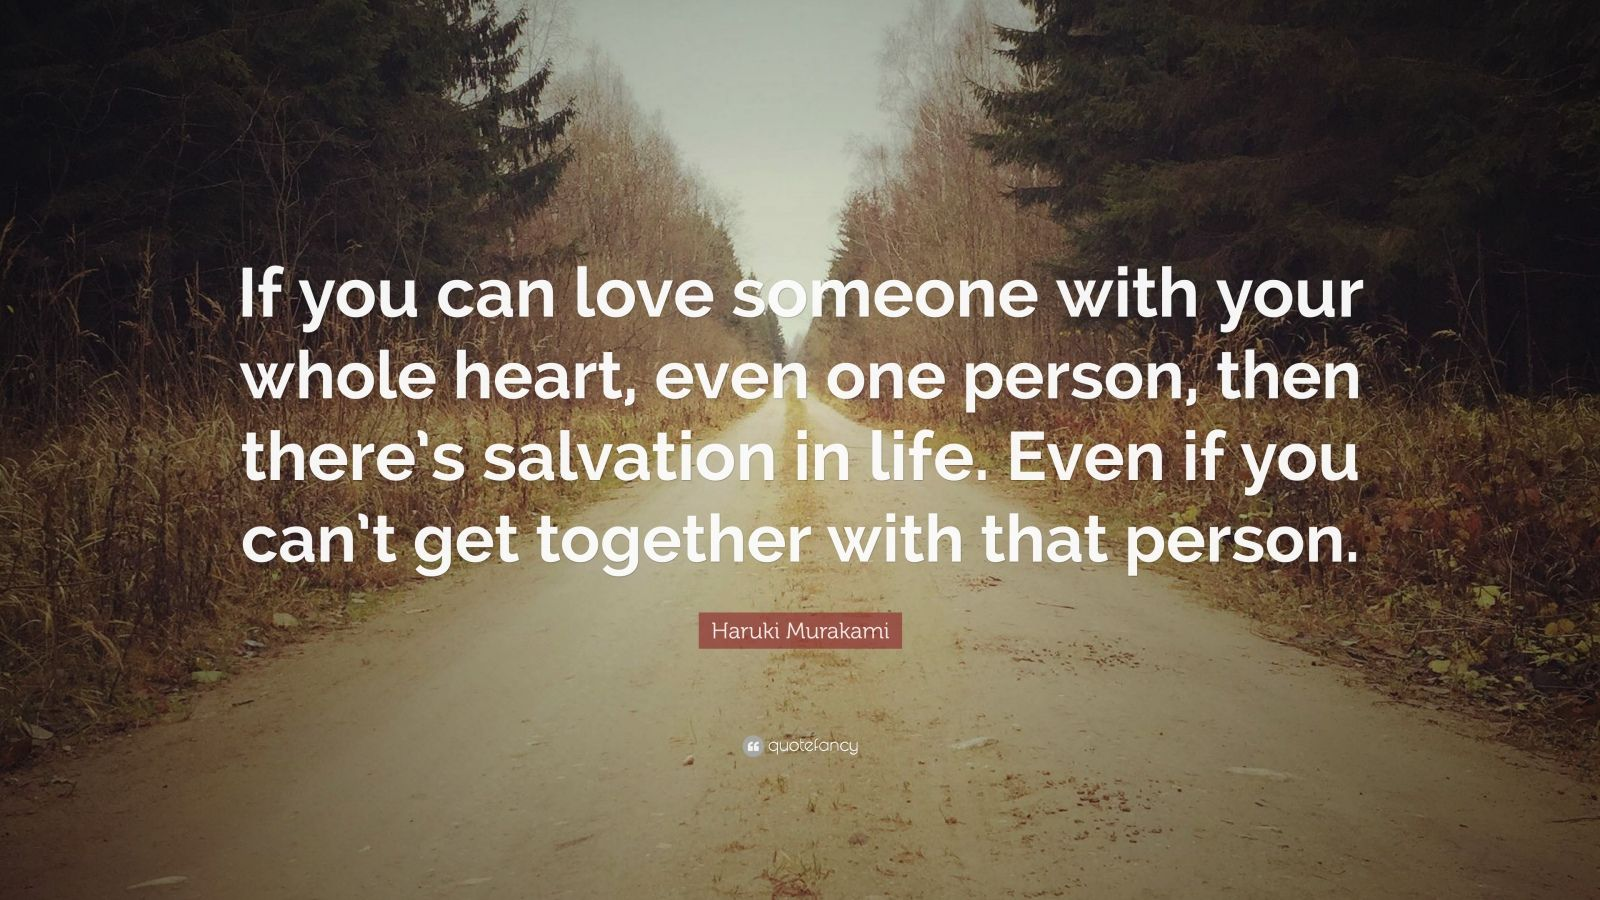 """Haruki Murakami Quote: """"If you can love someone with your whole heart, even one person, then there's salvation in life. Even if you can't get together with that person."""""""